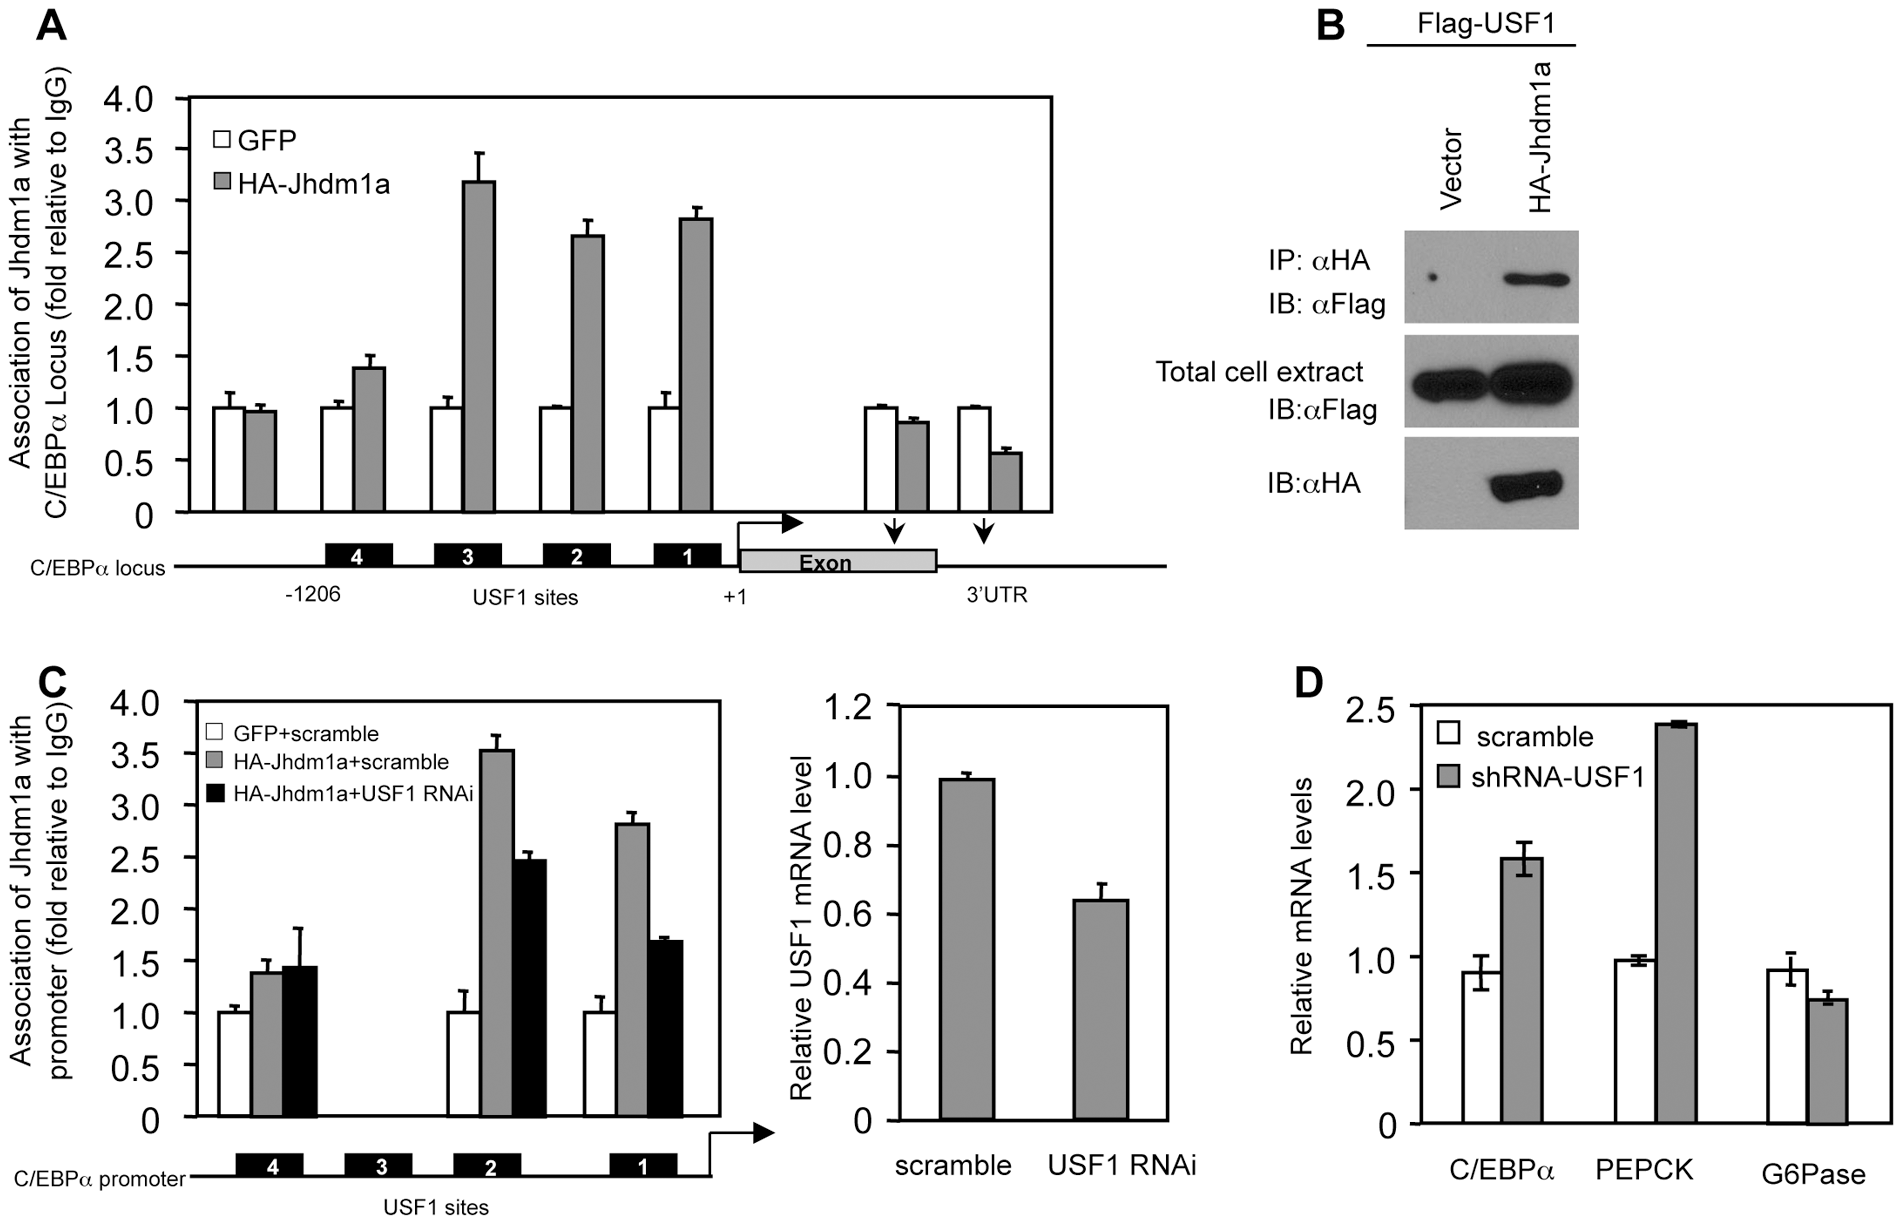 Suppression of C/EBPα expression by Jhdm1a is mediated by USF1.